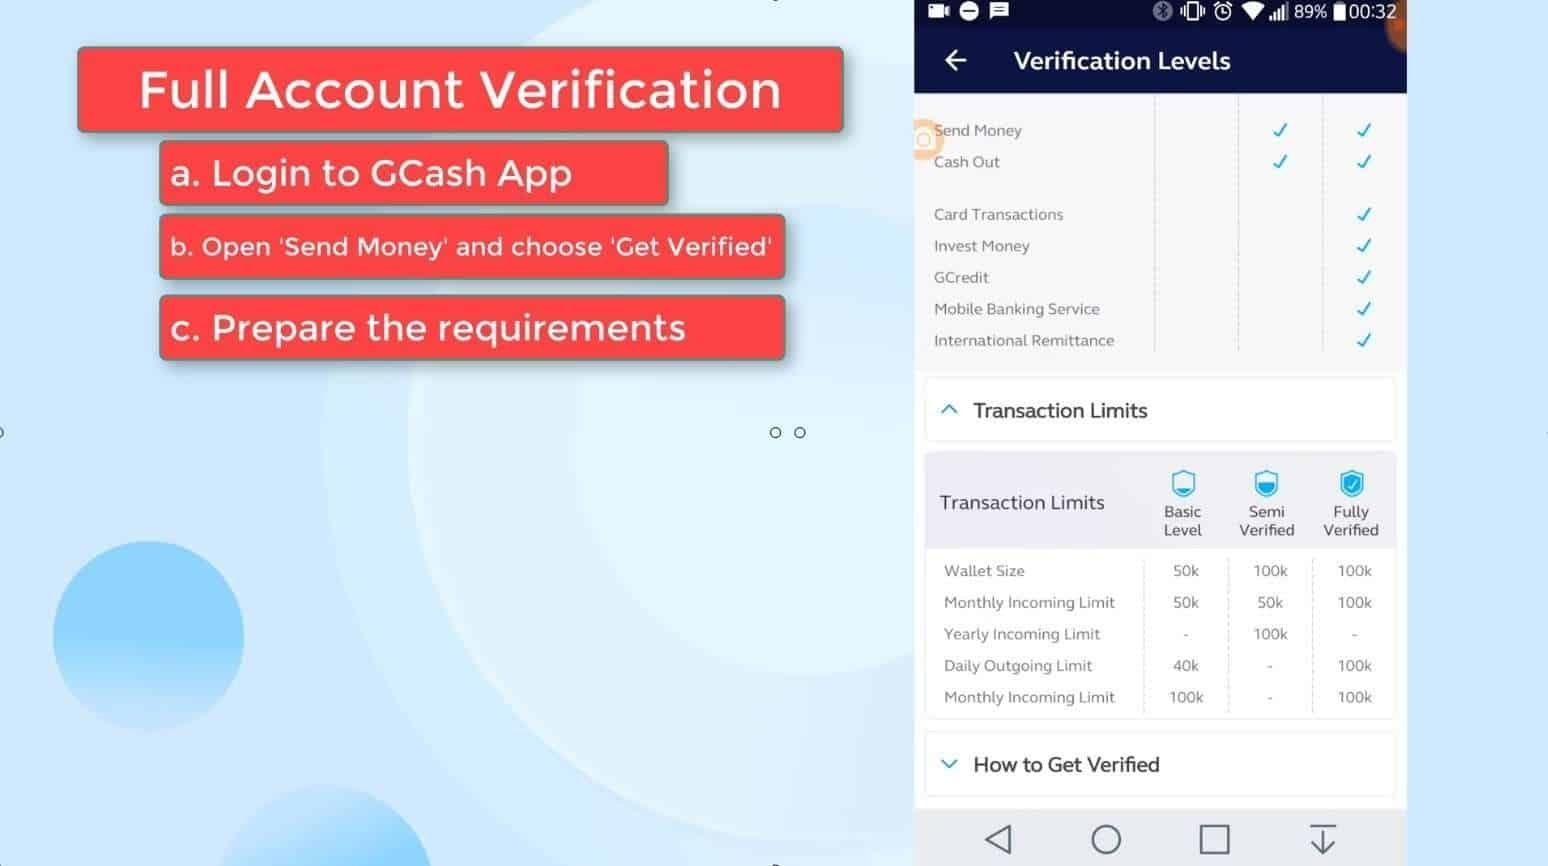 GCash Verify 22